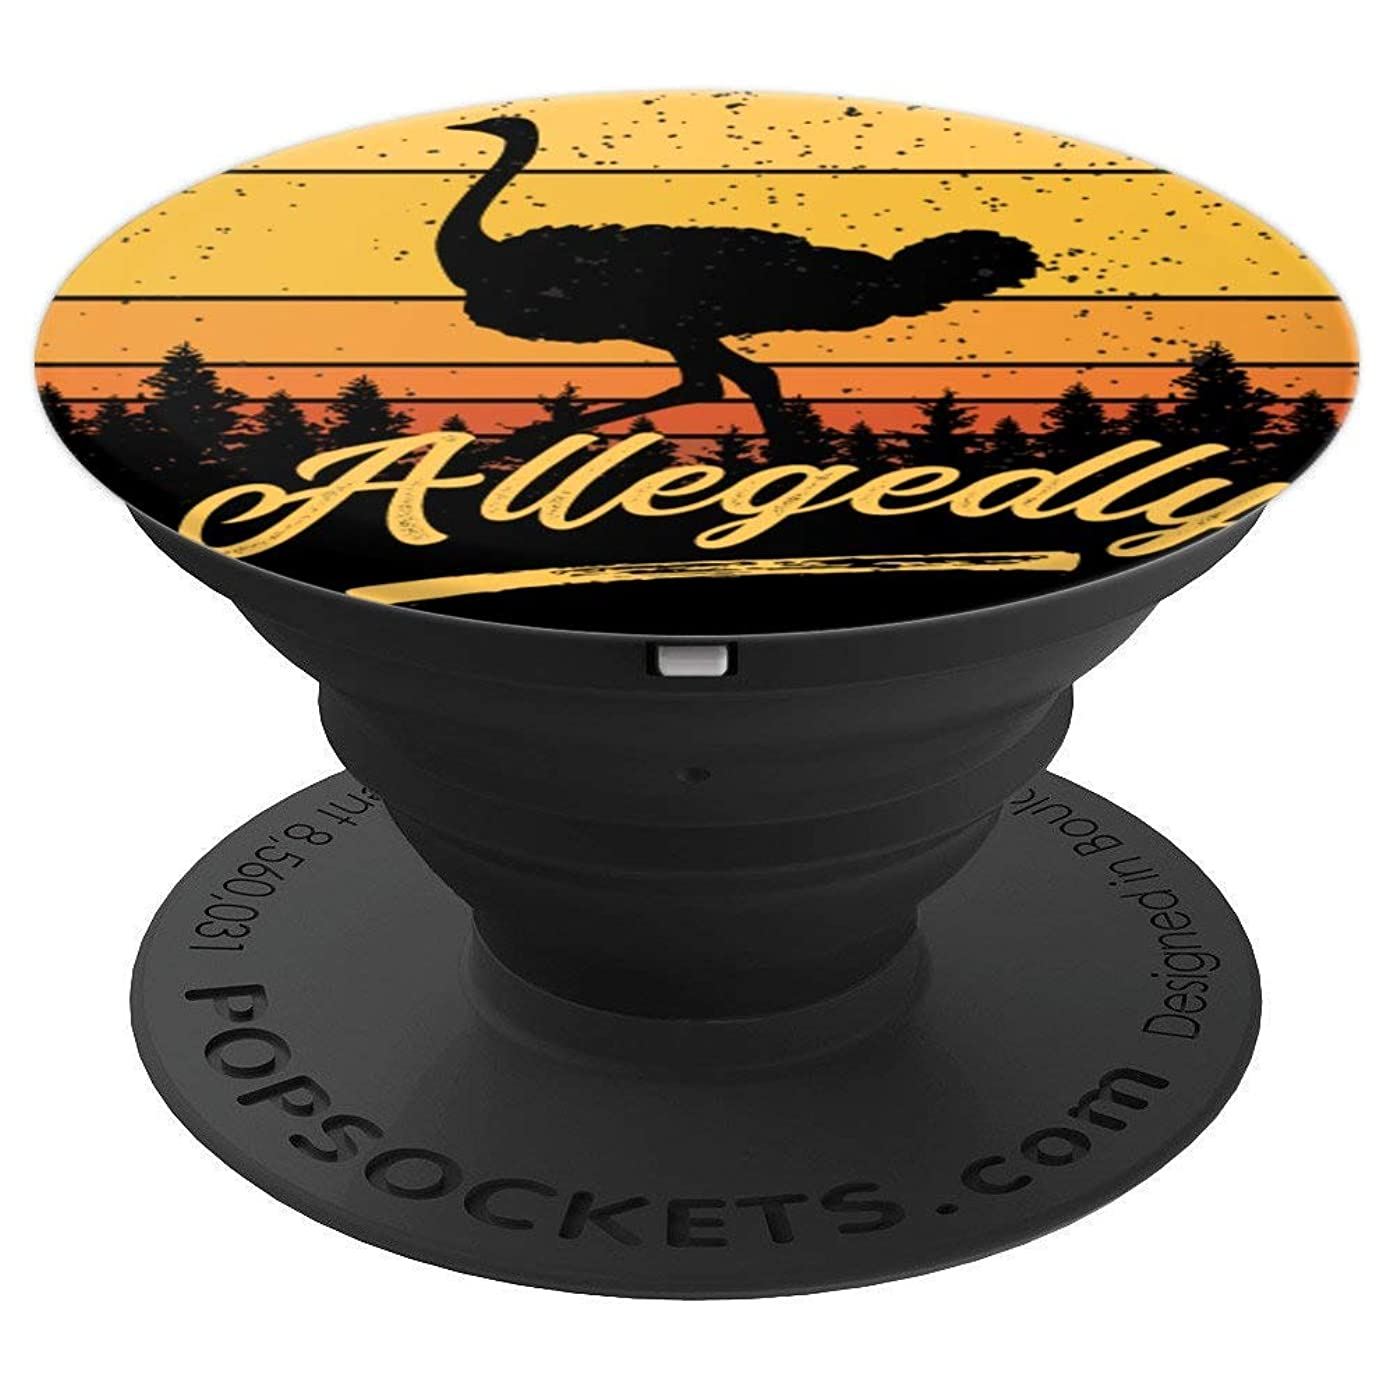 Letterkenny Allegedly Ostrich Flightless Bird Retro Sunset - PopSockets Grip and Stand for Phones and Tablets